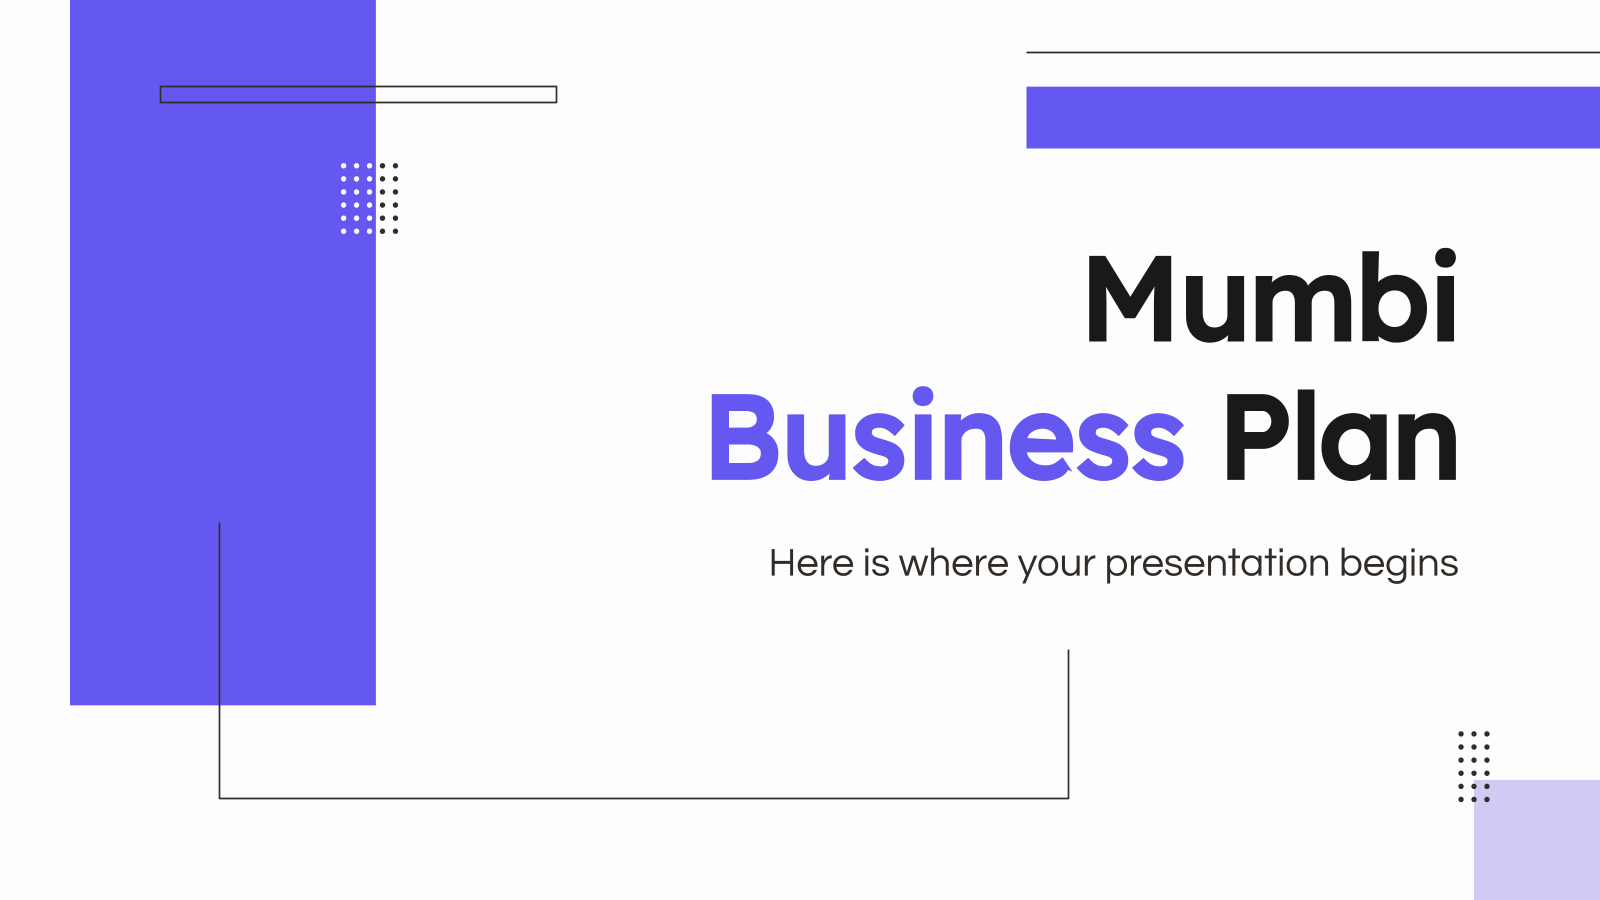 Mumbi Business Plan presentation template